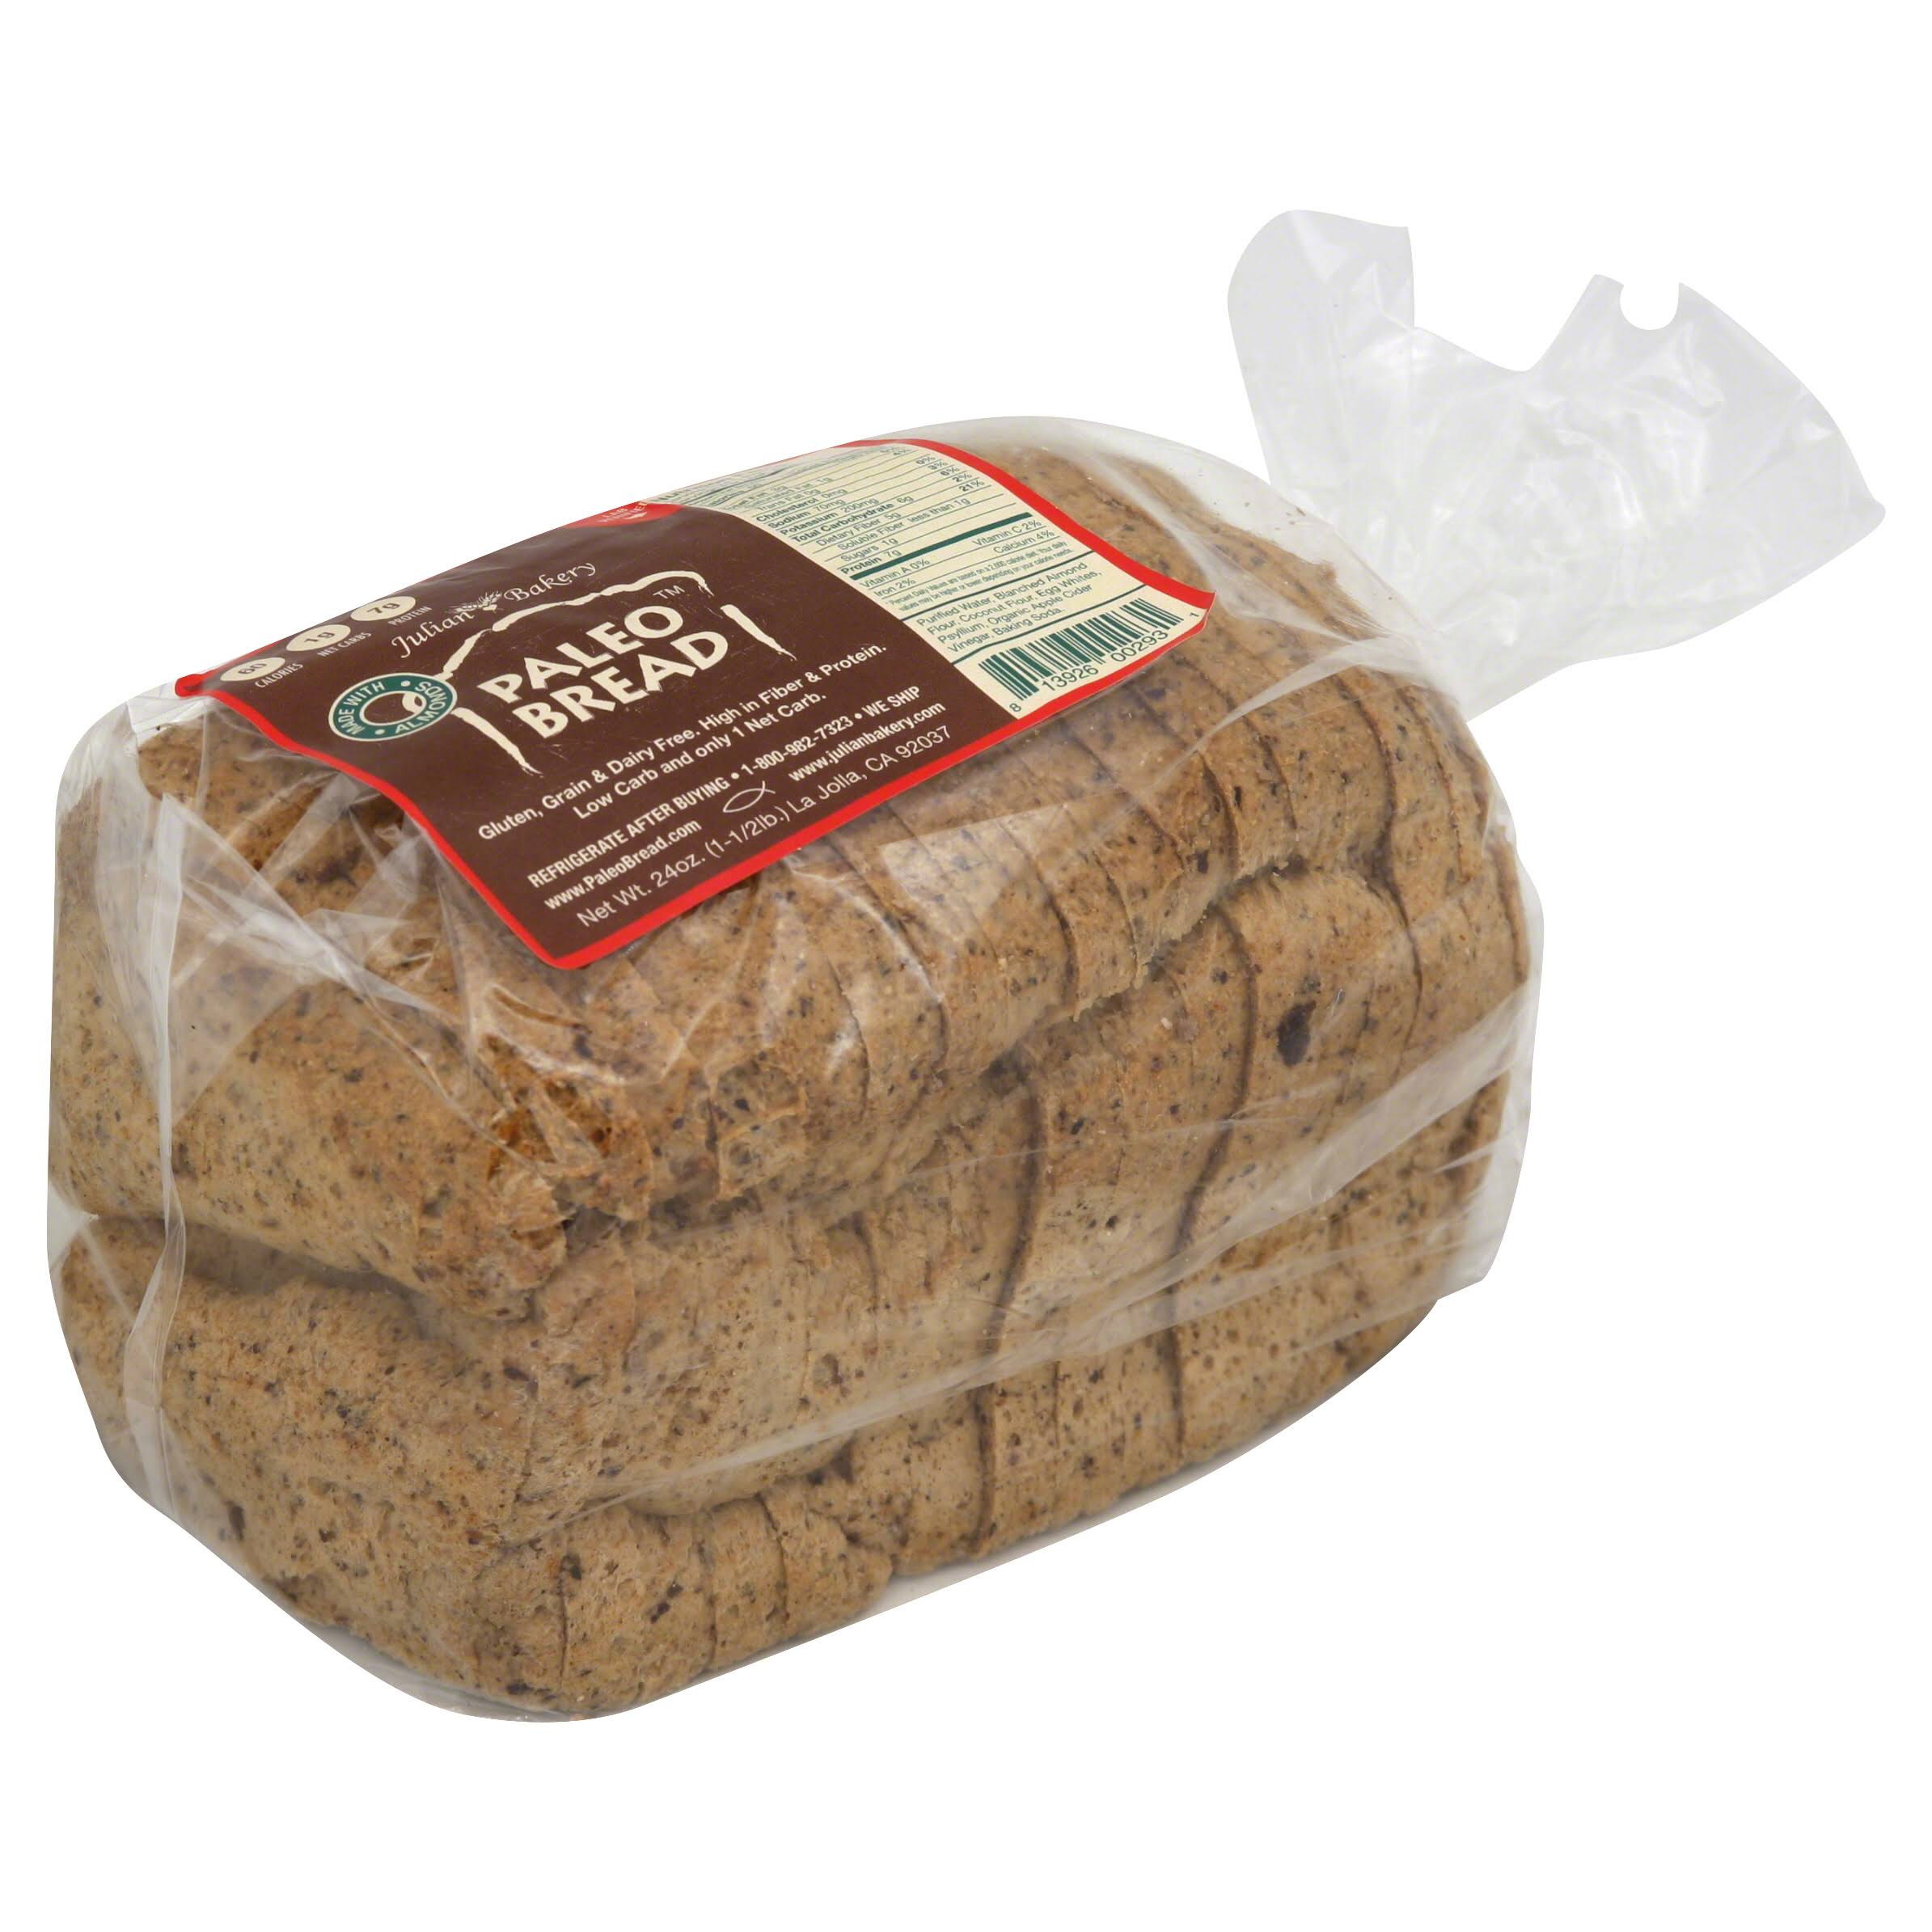 Julian Bakery Paleo Bread, Made with Almonds - 24 oz